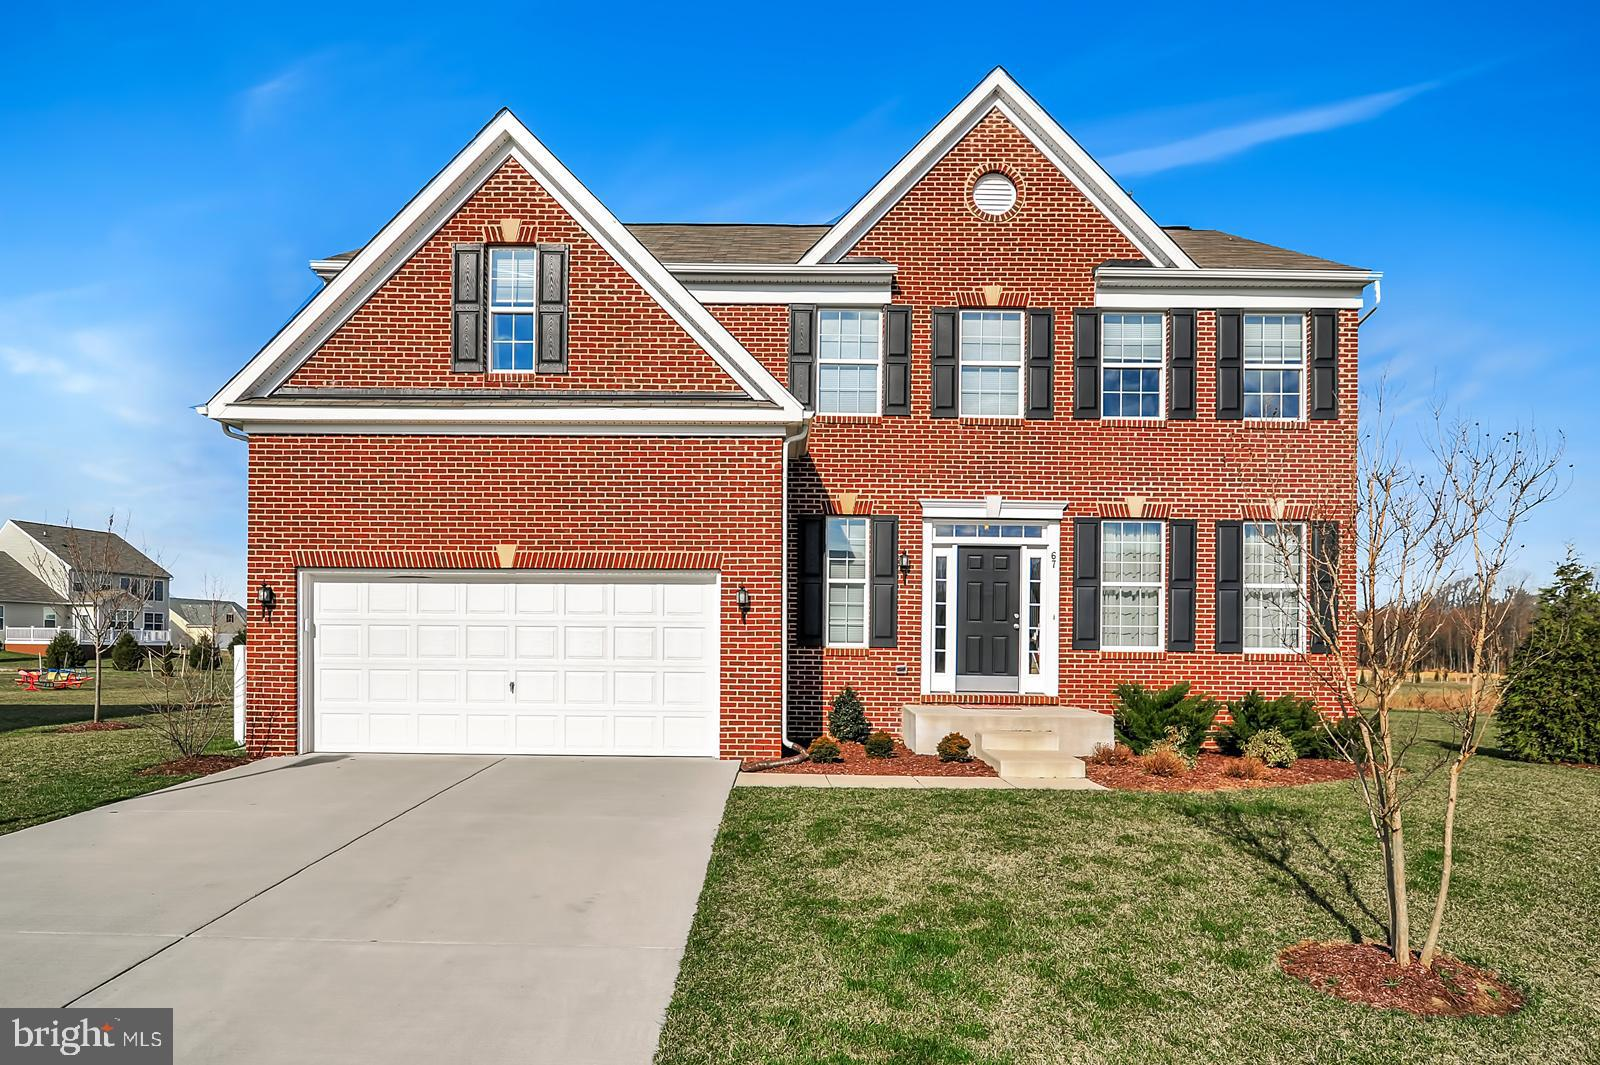 R-10899 No need to look for new construction - this beautiful brick colonial is only 3 years old and appointed with every upgrade imaginable! Located in the sought-after neighborhood of Reserve Chestnut Ridge in the Caesar Rodney School District, this 4 bedroom home has it all.  It features a gourmet kitchen with endless granite, stainless upgraded appliances, hand scraped wood flooring, and morning room addition.  The open plan from kitchen to family room makes the rear of this home the place to be.  The family room boasts a gas fireplace with stone backdrop and mantle.  The second floor includes the generous master bedroom with walk-in closet and luxury bath featuring an over-sized tiled shower and separate soaking tub.  The finished lower level is too good to be true with wet bar, massive family/game room, full bath, and additional office or media room.  This home is also situated on a premium cul-de-sac lot and is pond front!  Enjoy the water view from the wraparound deck or sit by the water side and fish in the stocked pond.  Call for additional information.